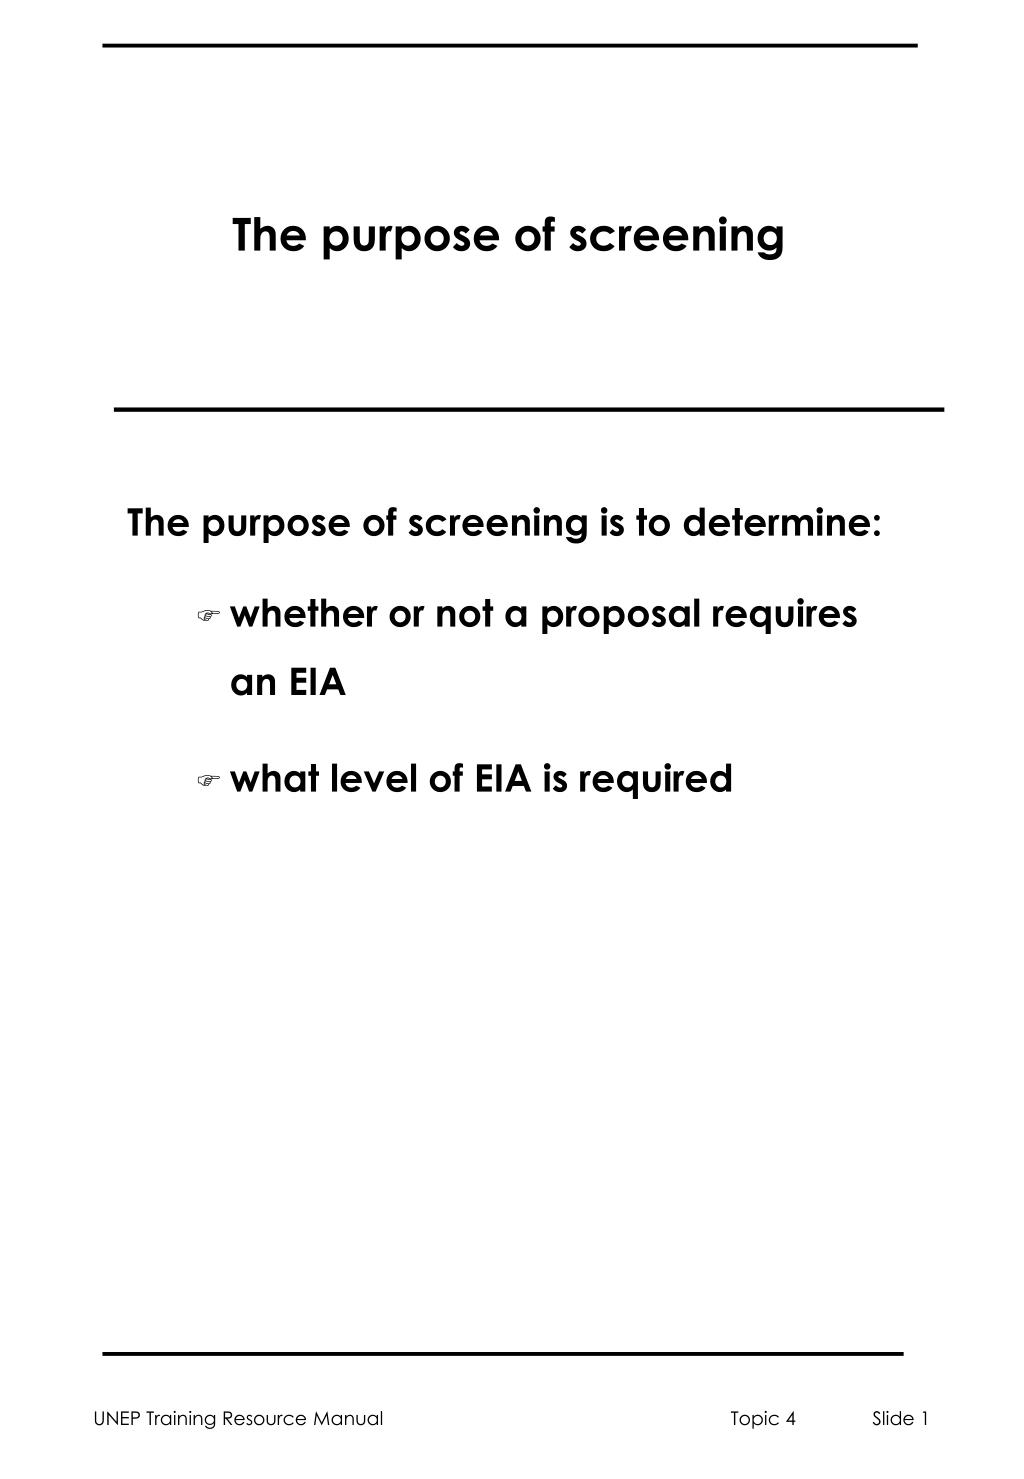 The purpose of screening